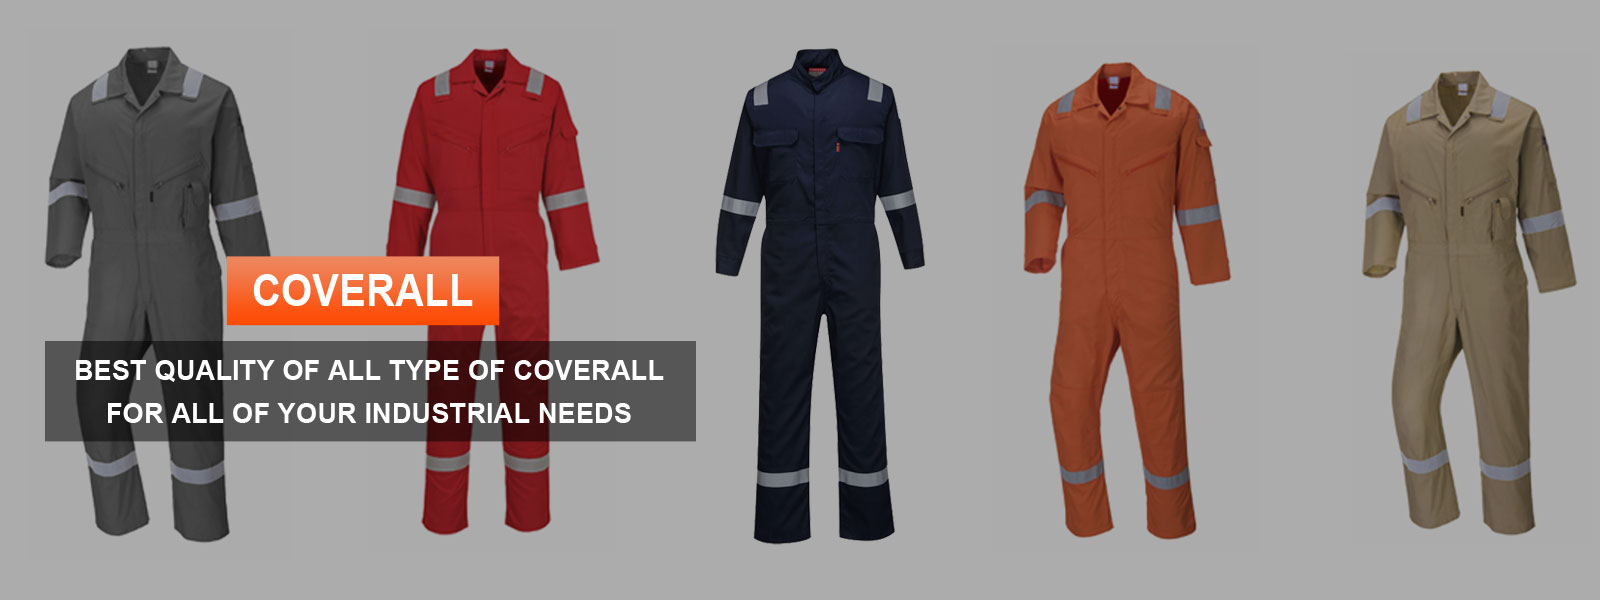 Coverall Manufacturers in Bihar